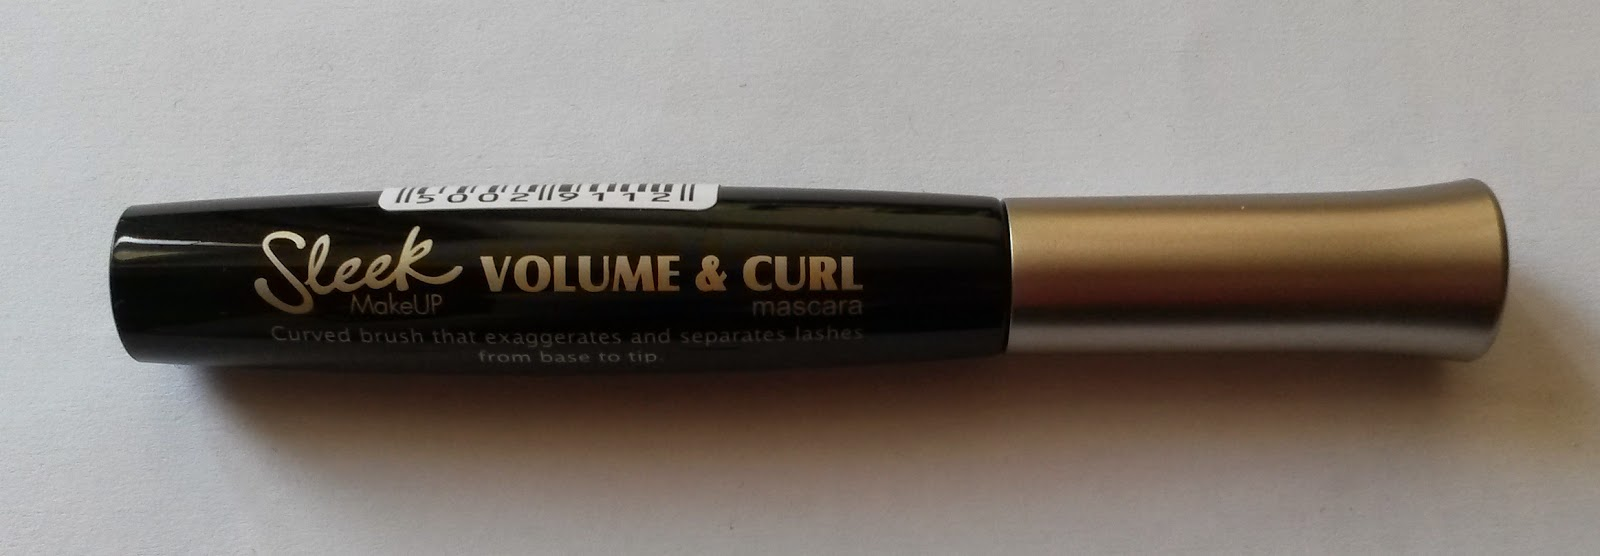 Mascara sleek Volume & curl